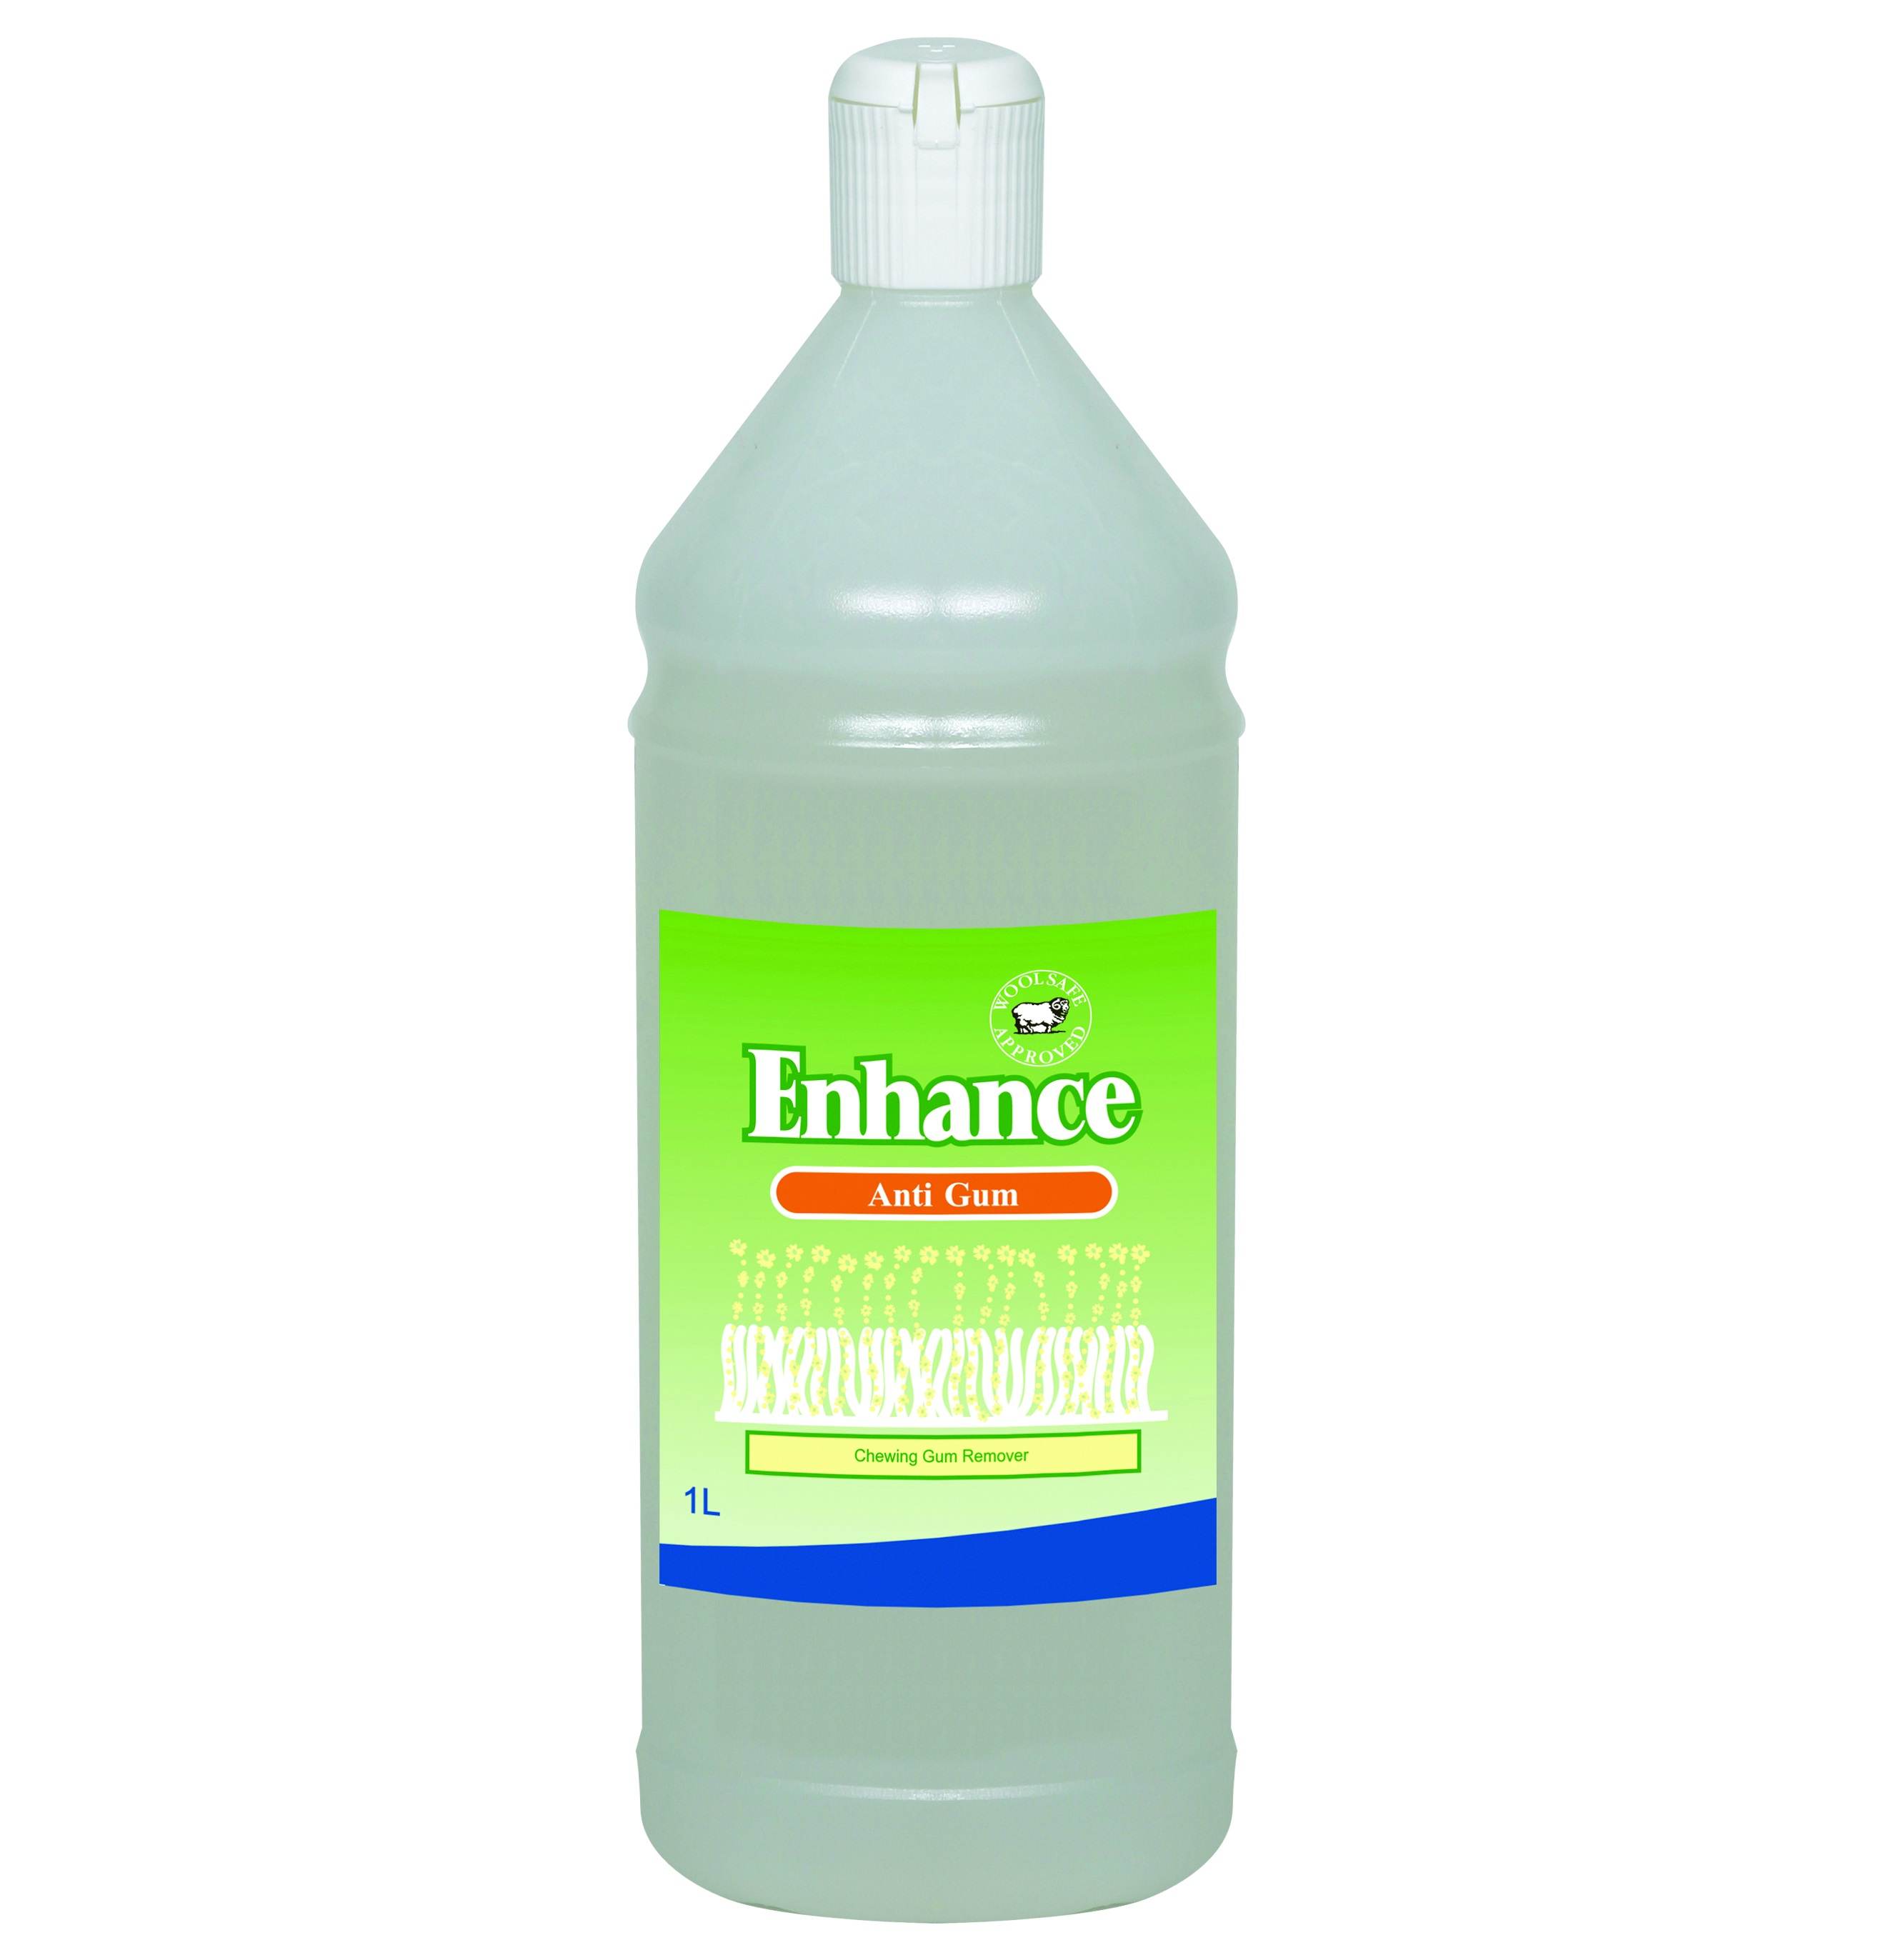 Johnson-Diversey-Enhance-Anti-Gum-12x1litre